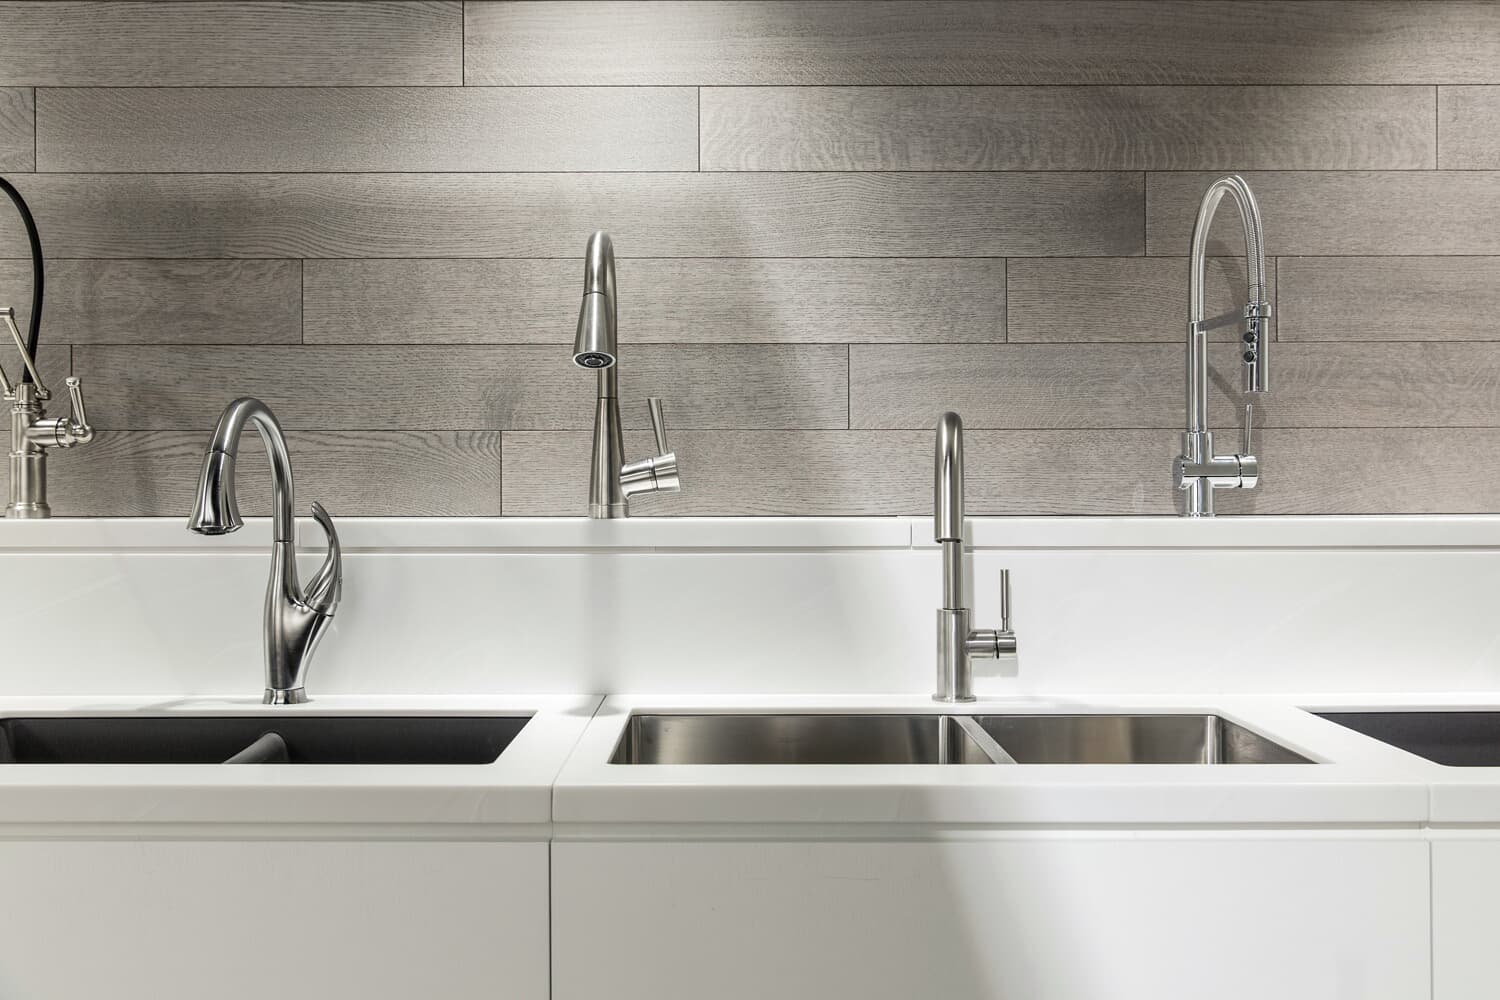 The Studio by Brookfield Residential faucets